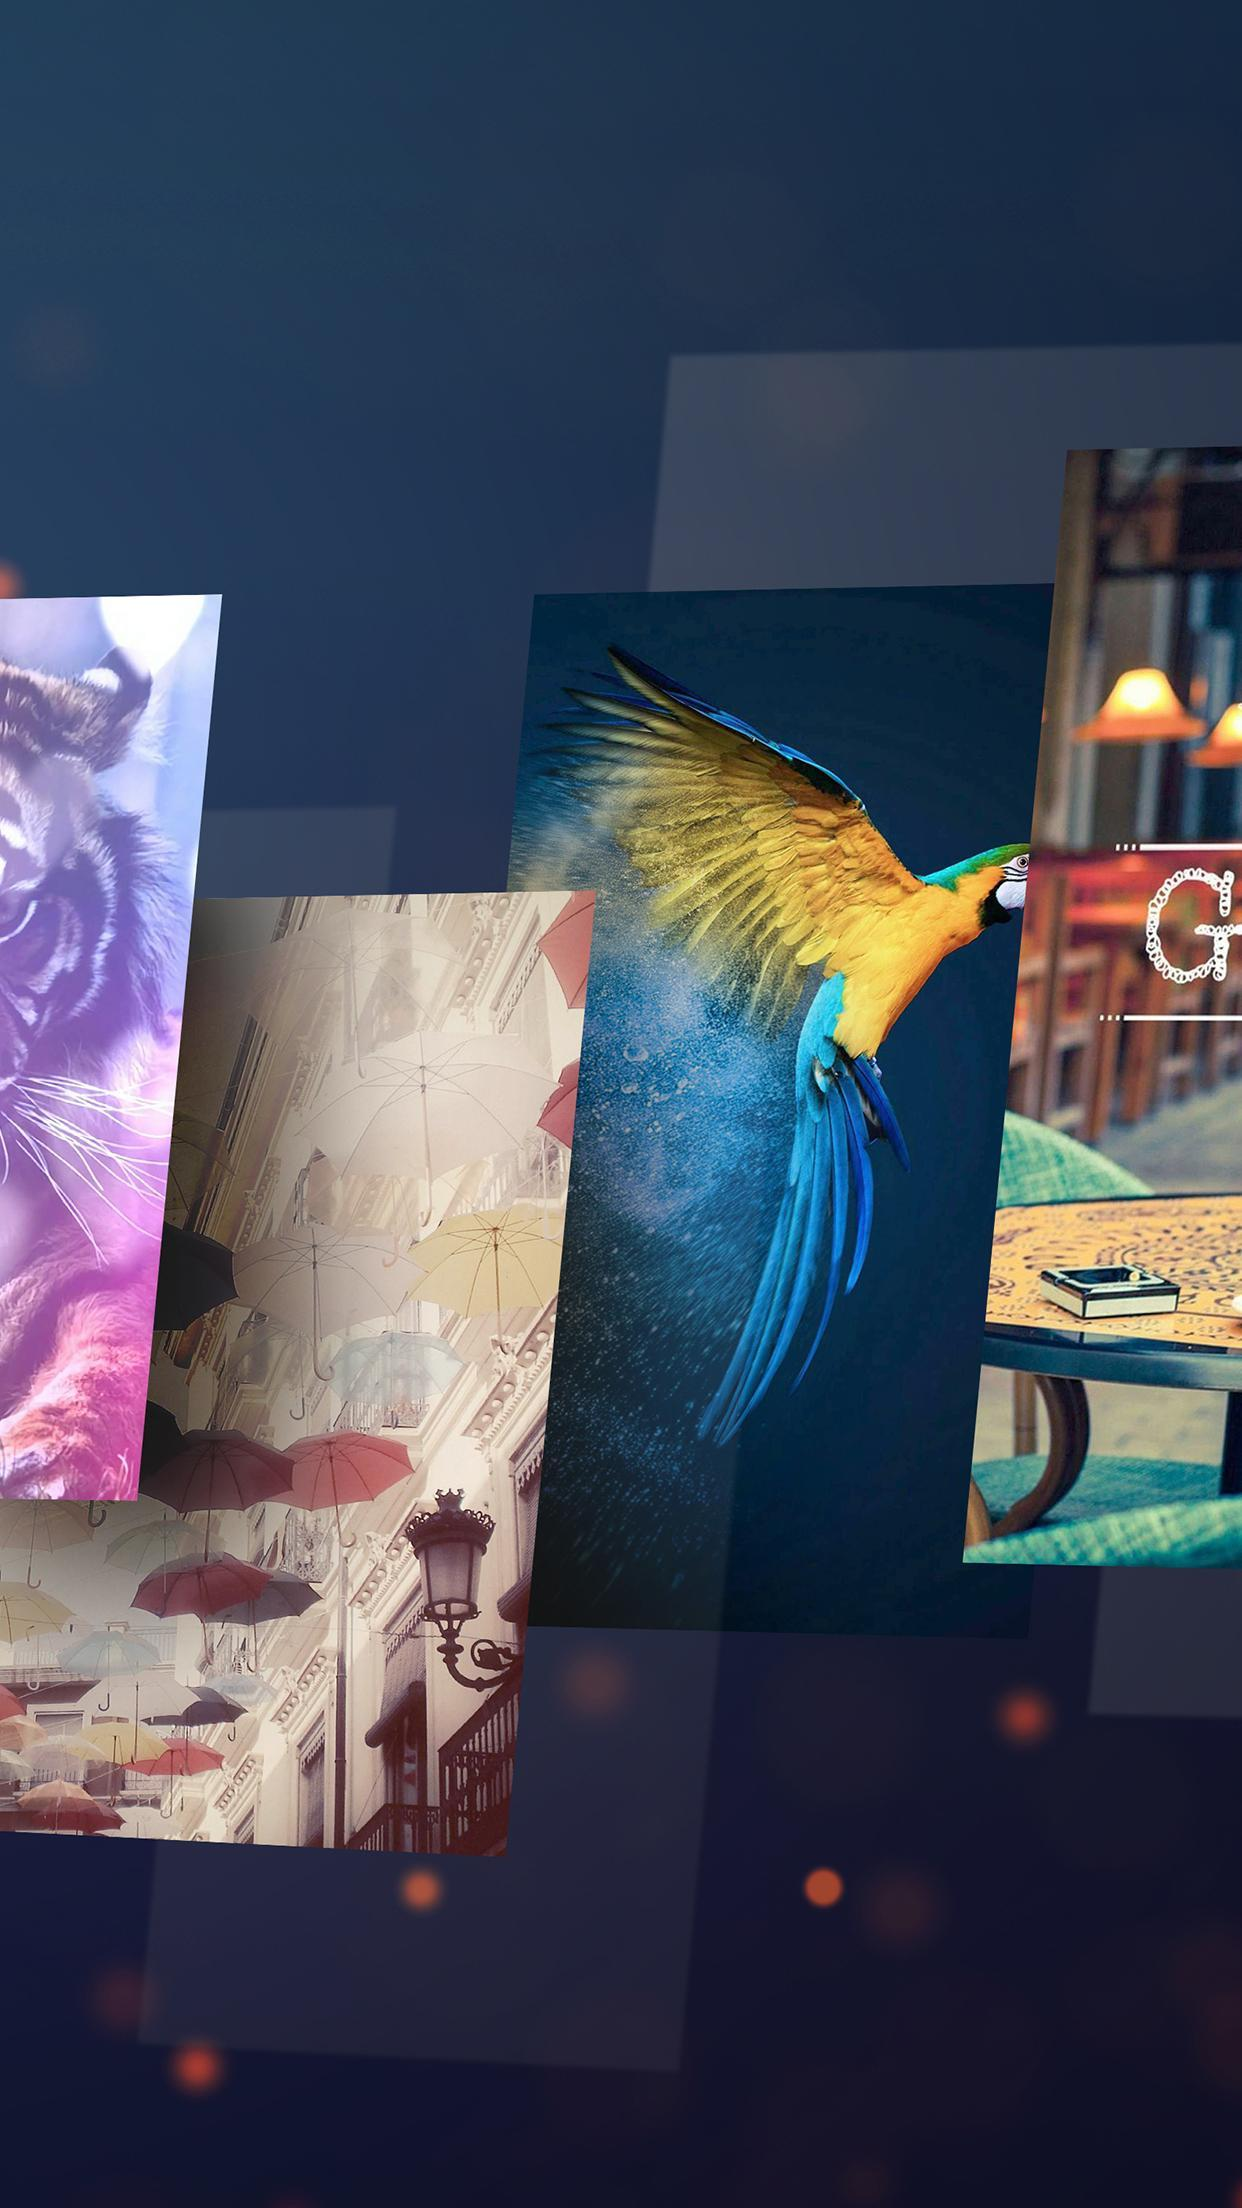 Top Trending Wallpapers: New Trending Wallpapers For Android